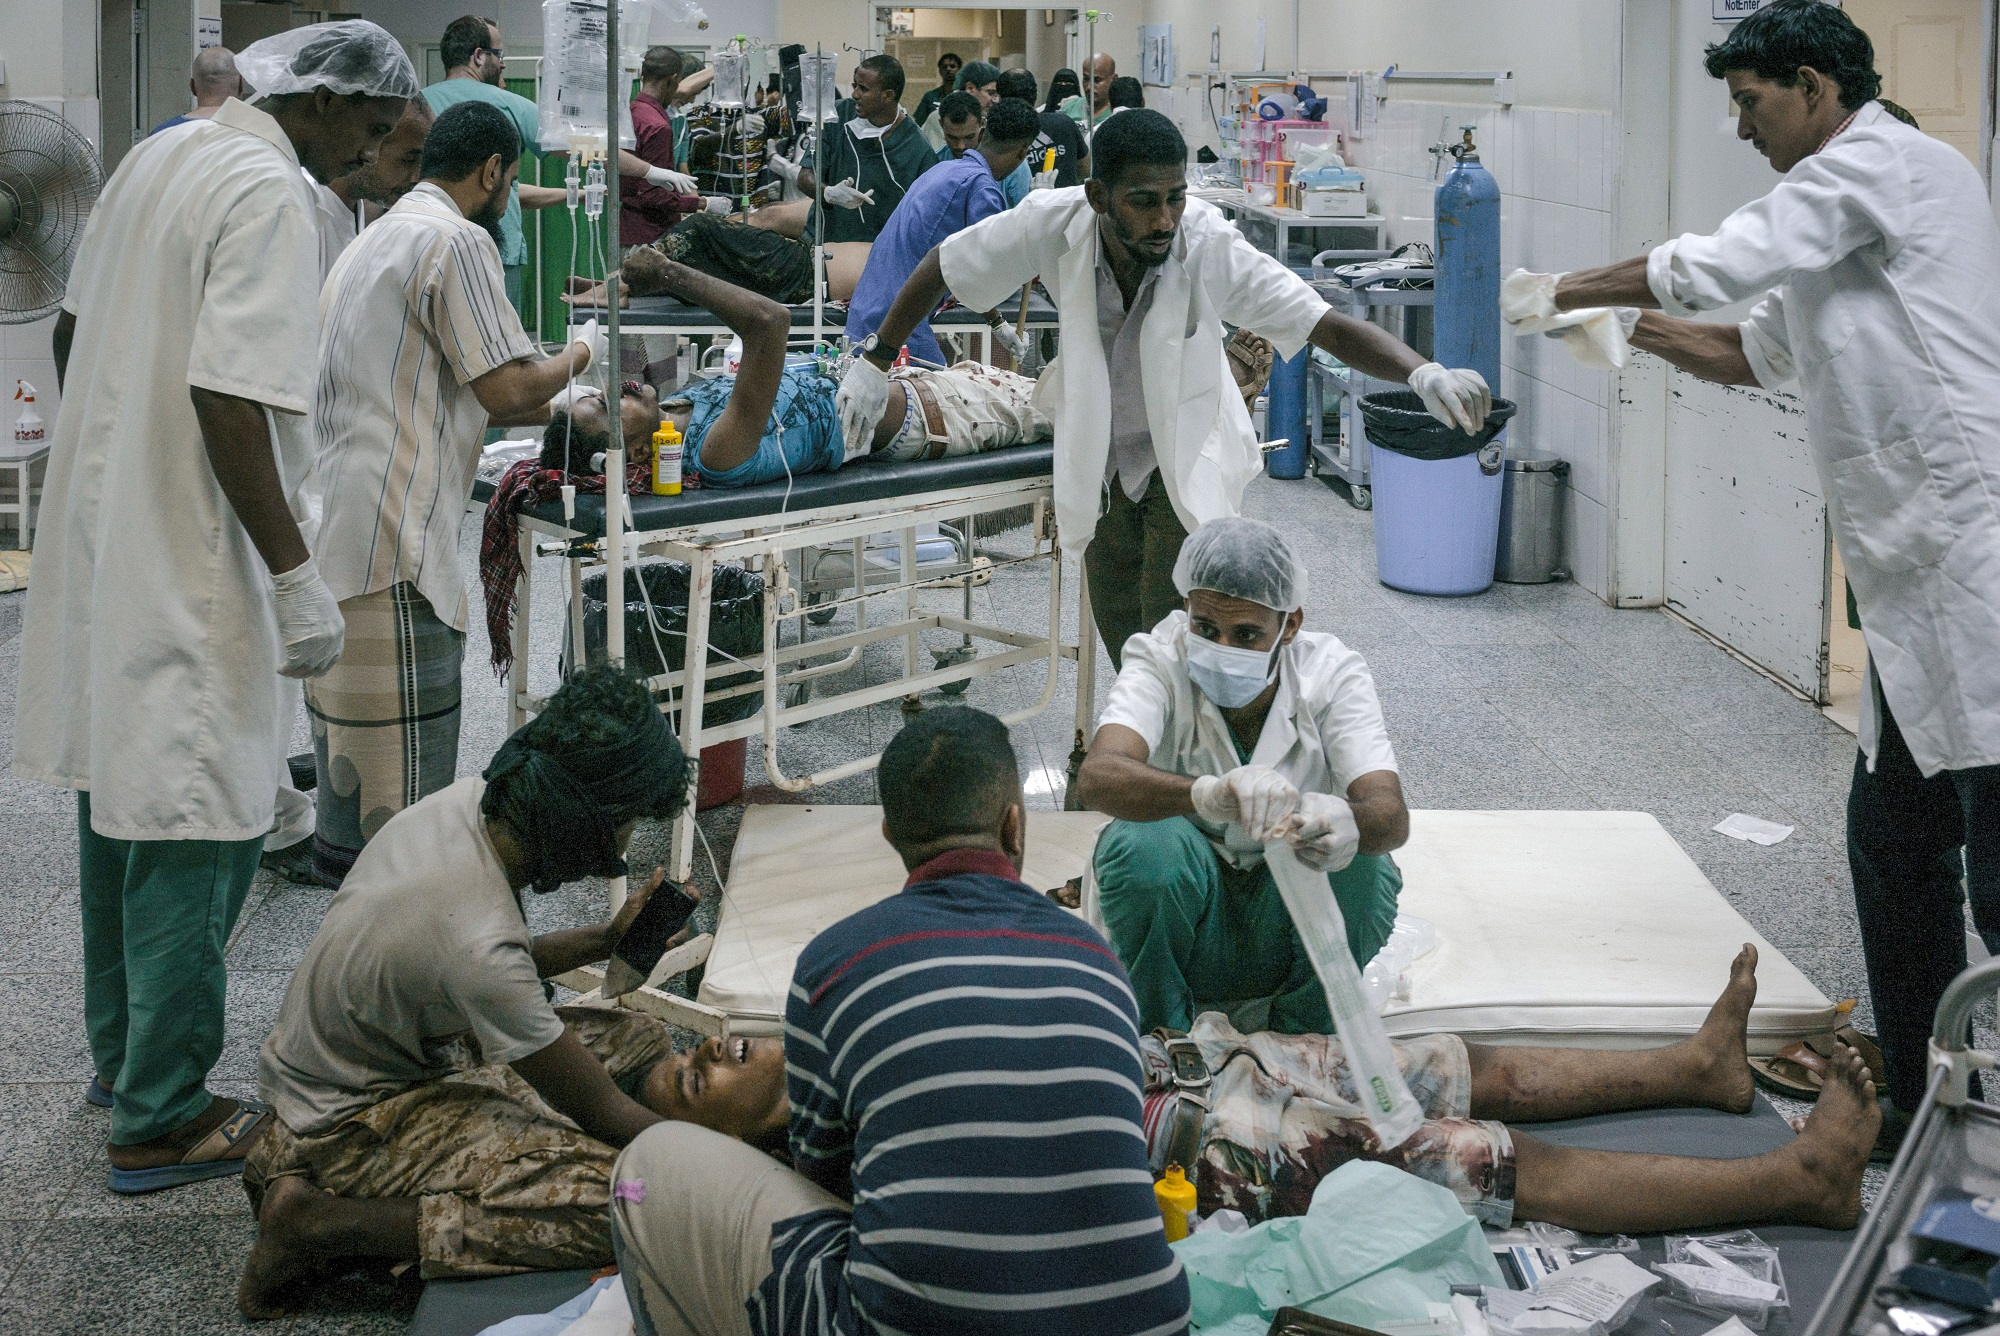 Emergency room in the Emergency Surgical Hospital in Aden, which MSF has been running since the beginning of 2015 (copyright: Guillaume Binet/MYOP)